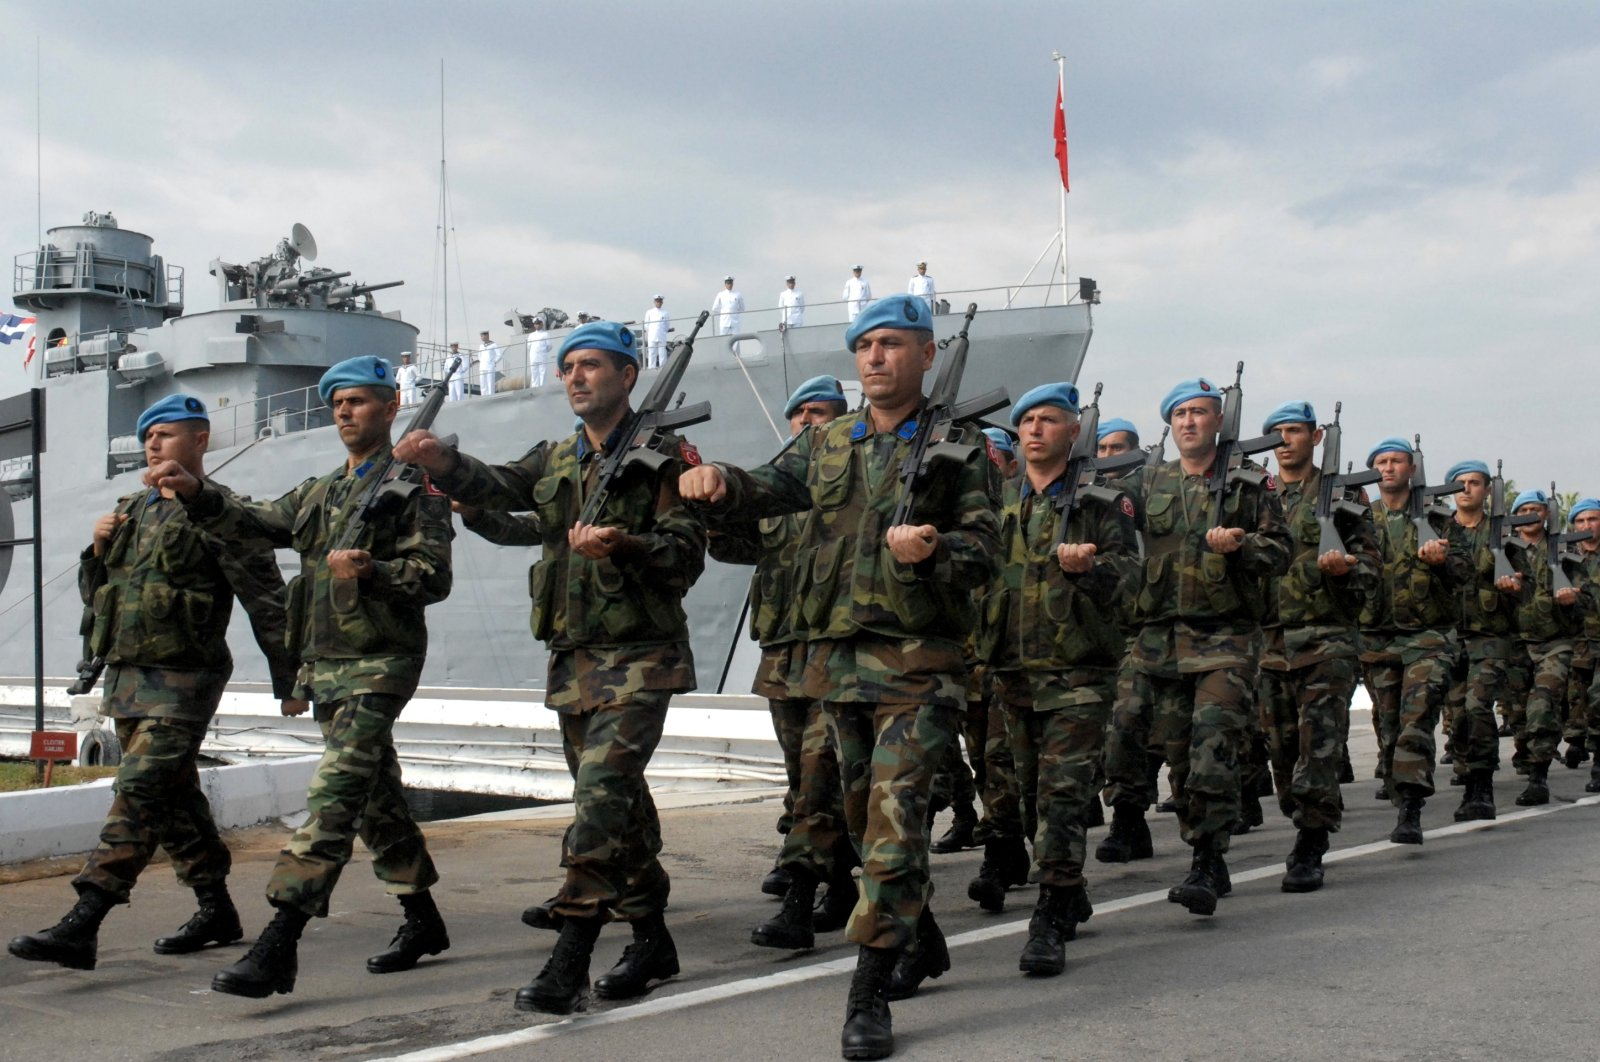 Turkish peacekeeping troops taking part in the United Nations Interim Force in Lebanon arrive in Tyre on Oct. 10, 2006 (AA File Photo)